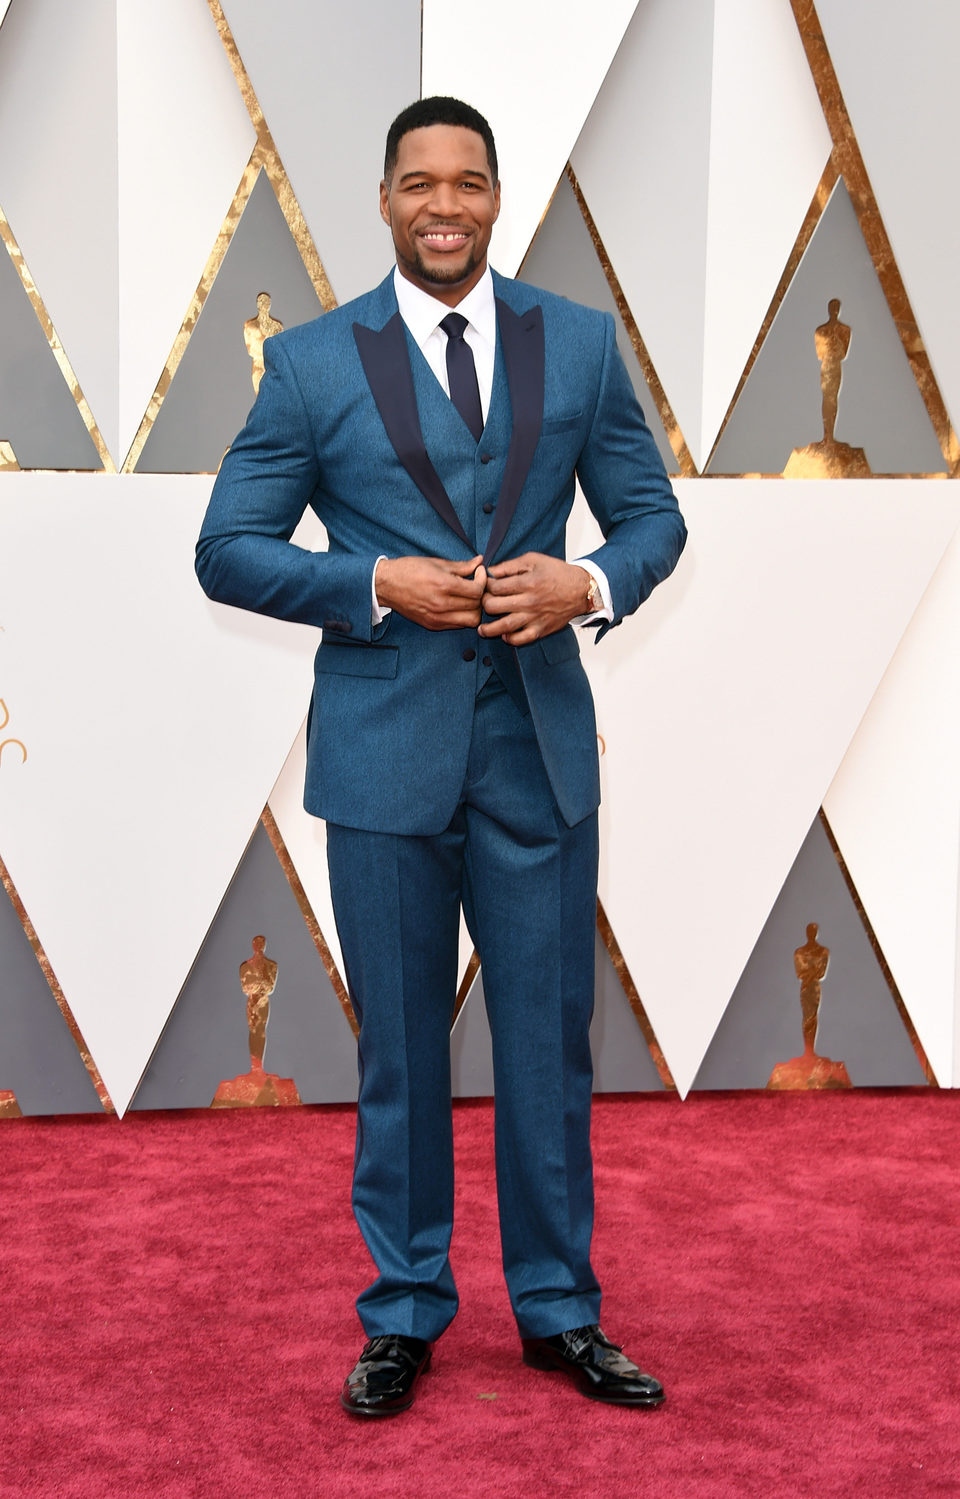 Michael Strahan at the Oscars 2016 red carpet